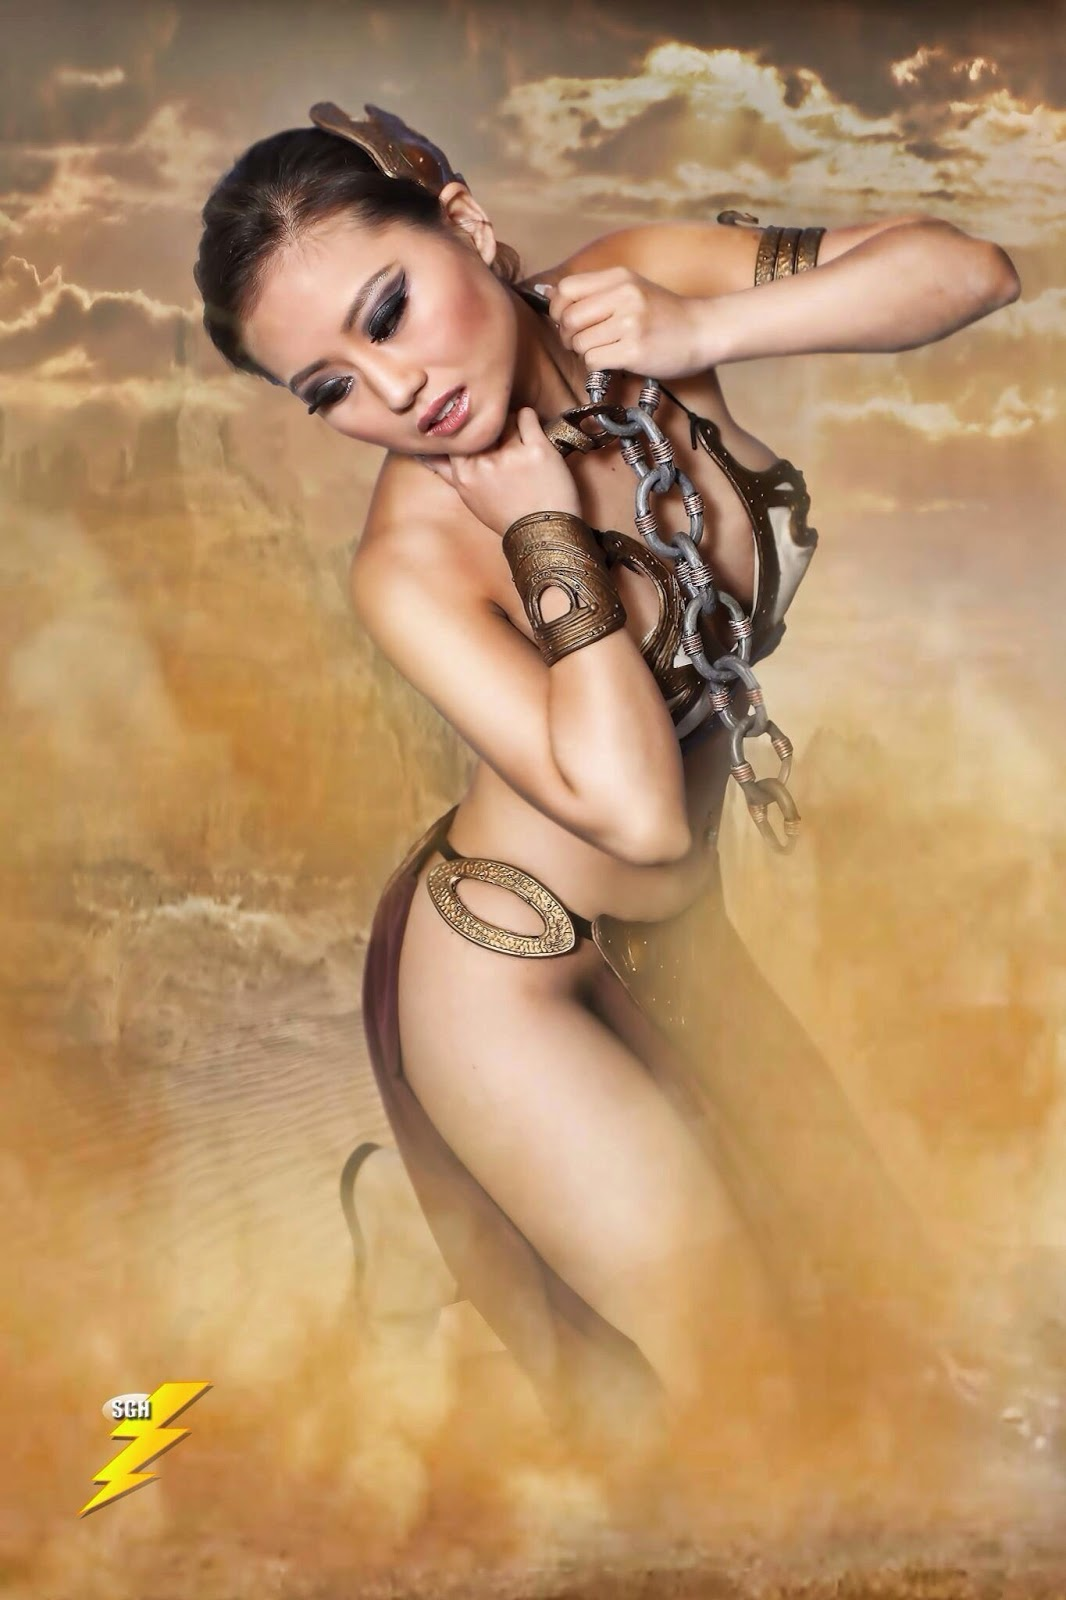 Star Wars - Princess Leia as Slave Leia from 'Return of the Jedi'